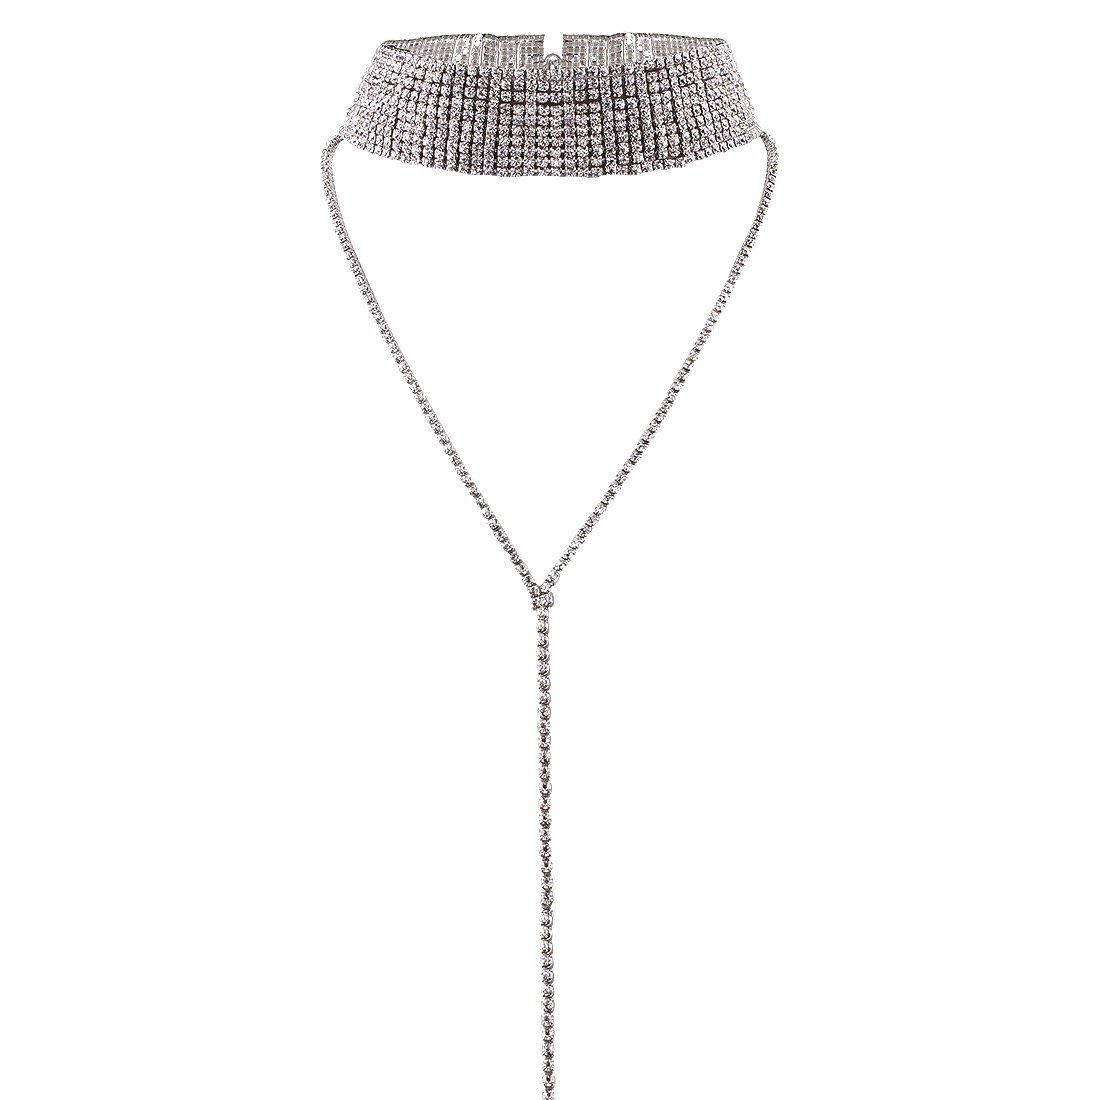 Sujarfla 10-Row Woman Rhinestone Choker with Long Pendant Pendant (silver)